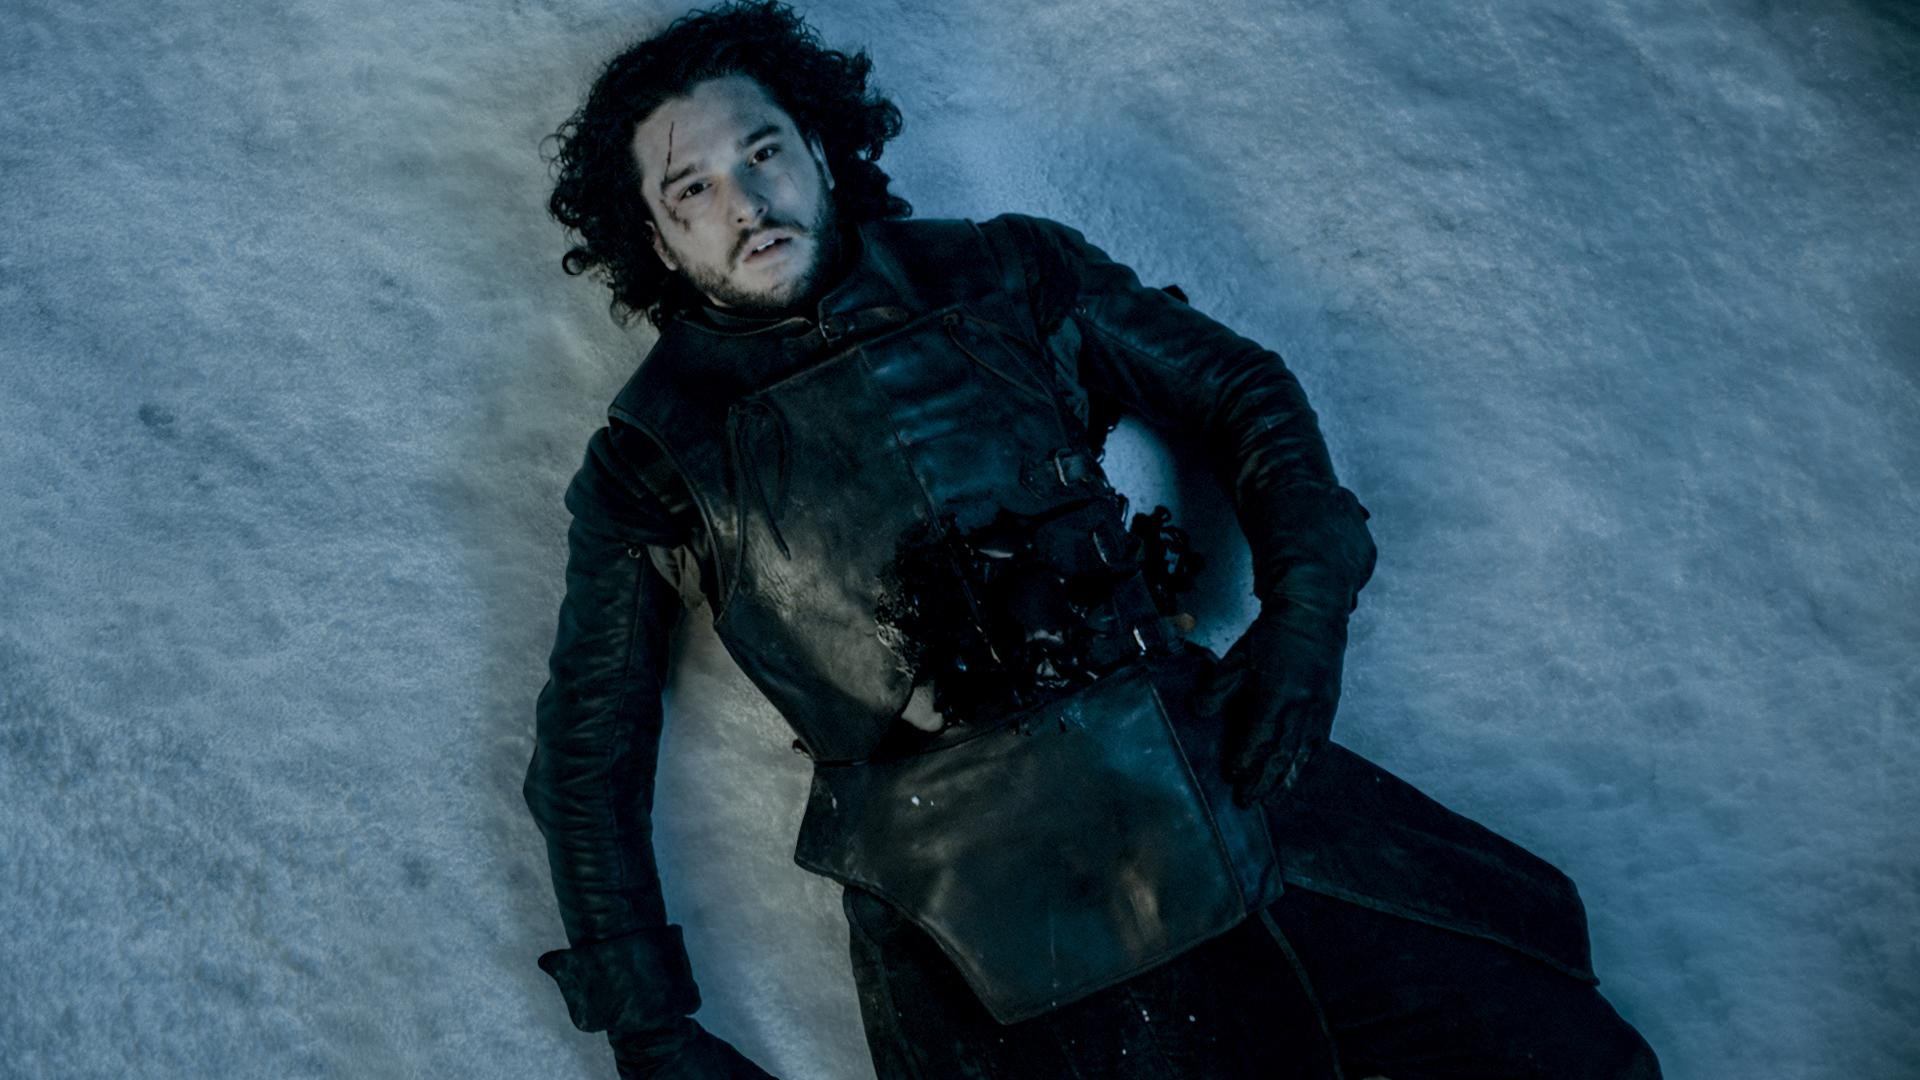 Kit Harington's Message to Fans After That Spectacular Game of Thrones Reveal